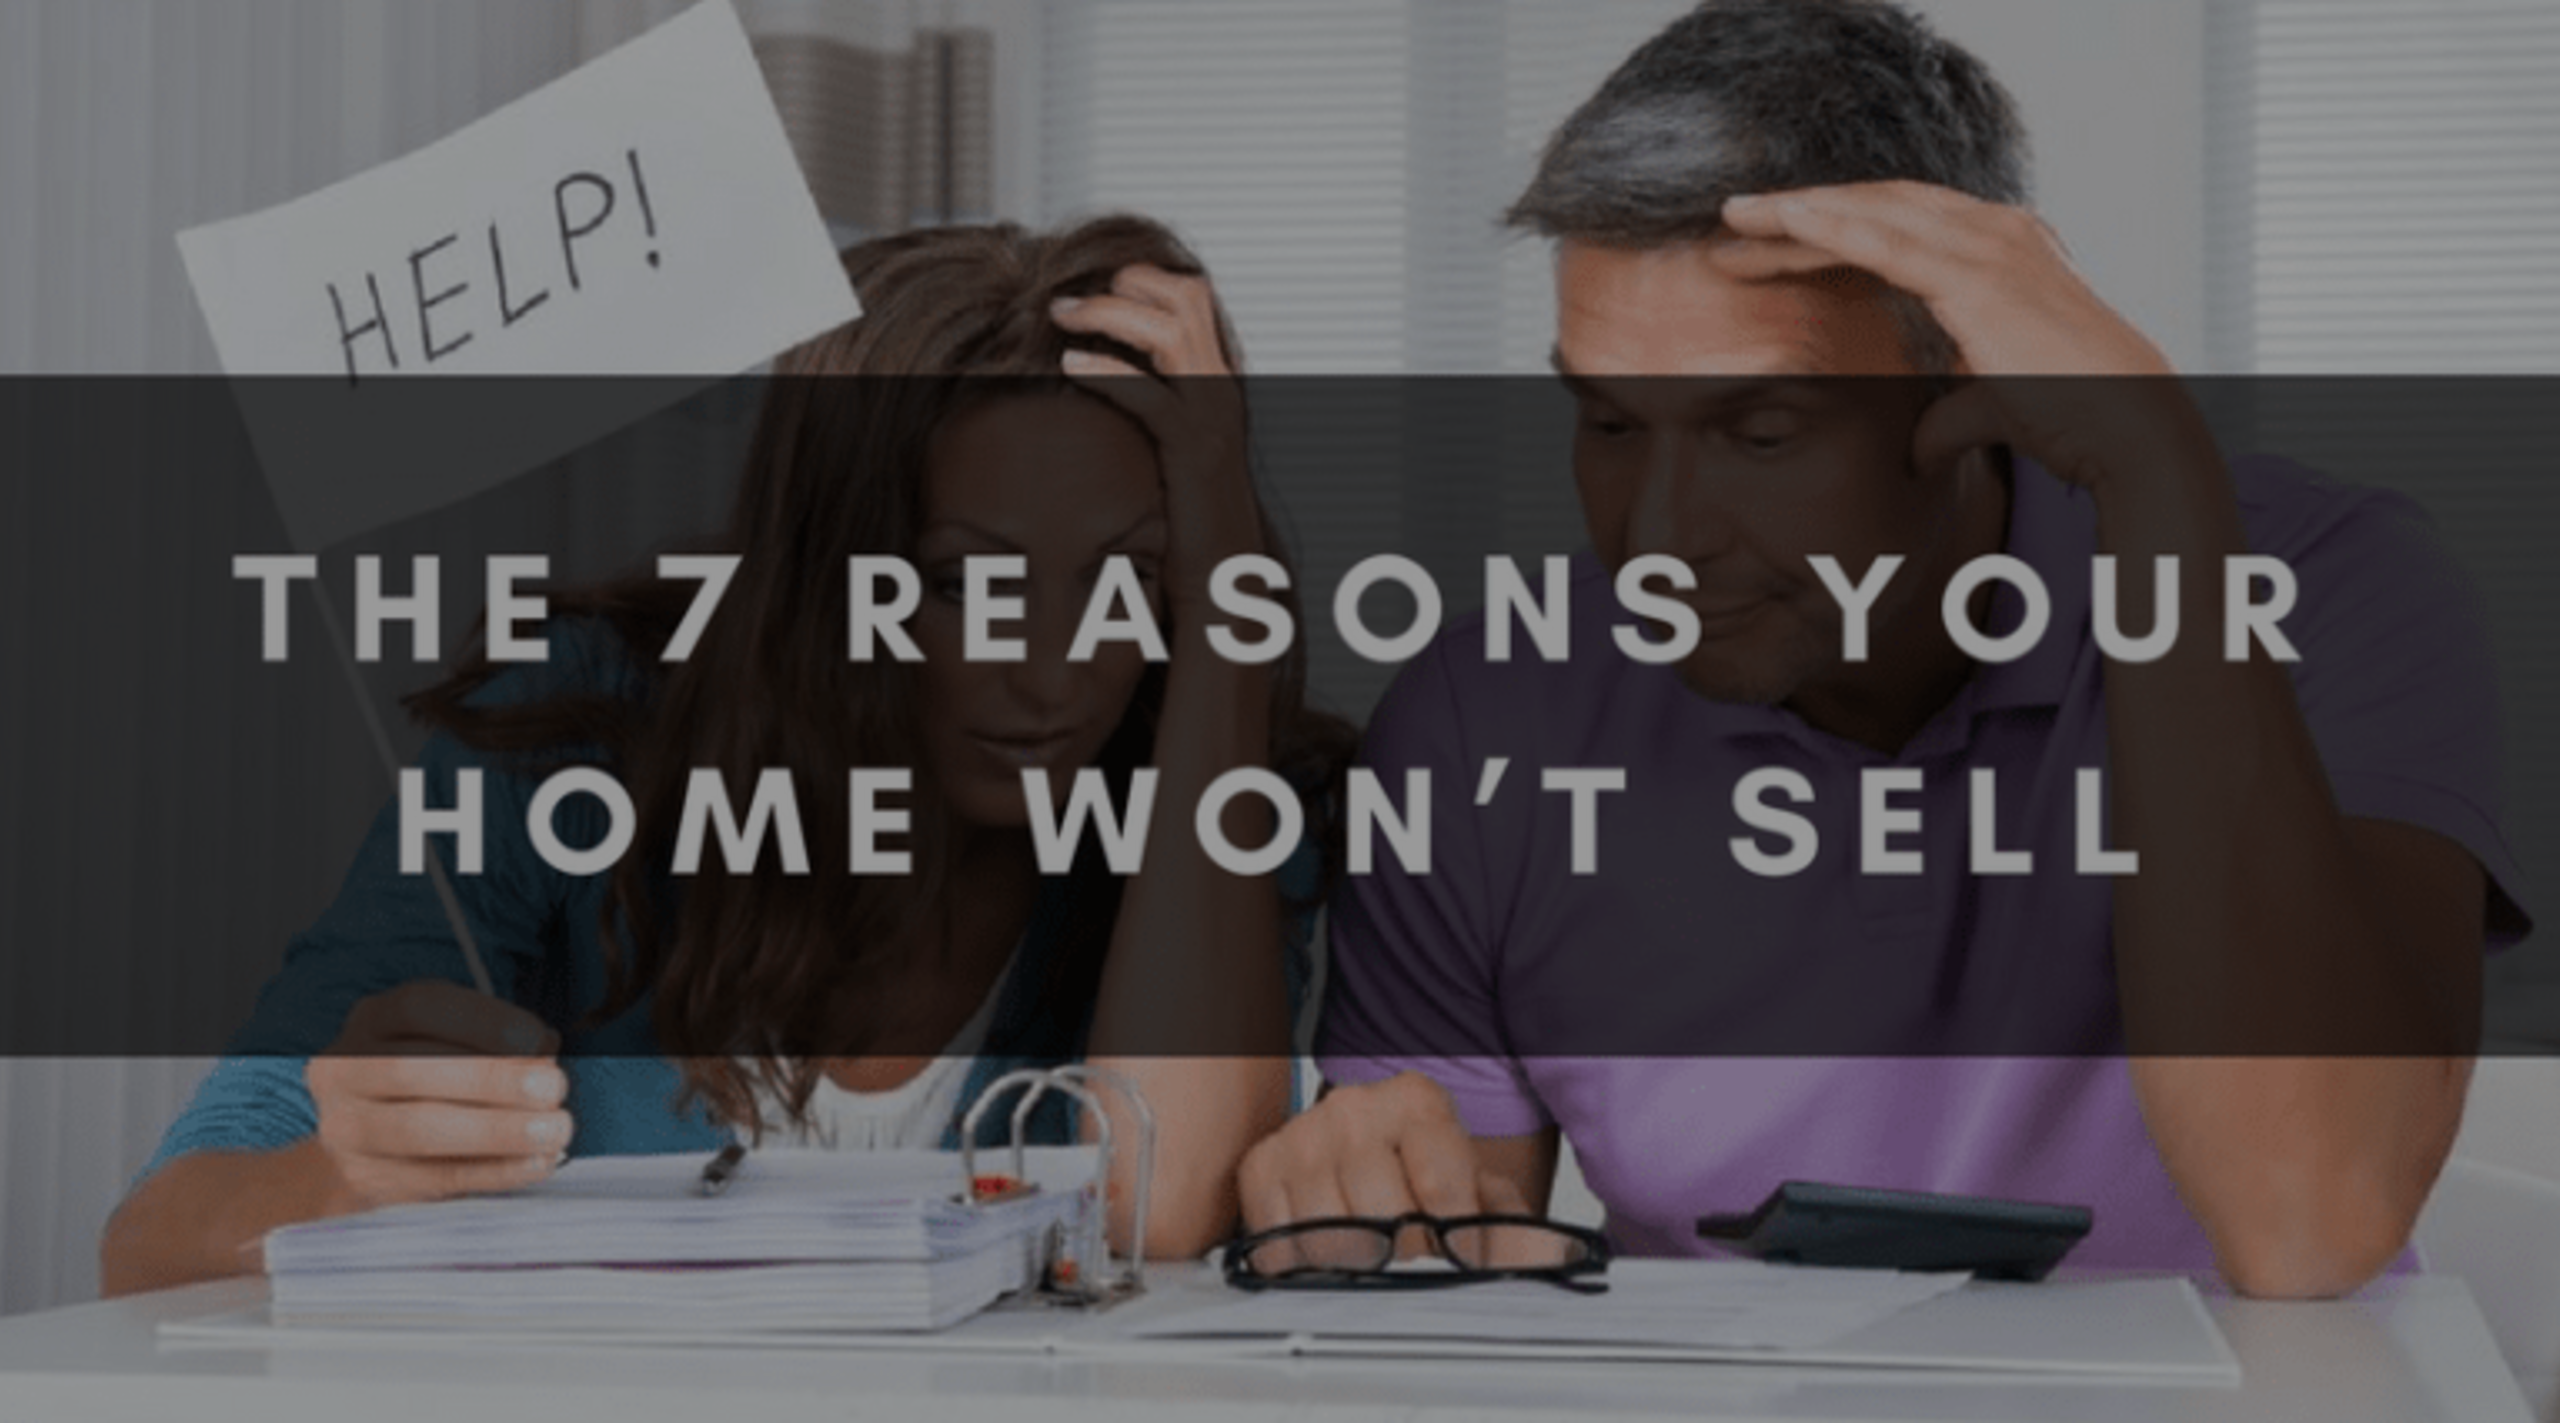 THE 7 REASONS YOUR HOME WON'T SELL